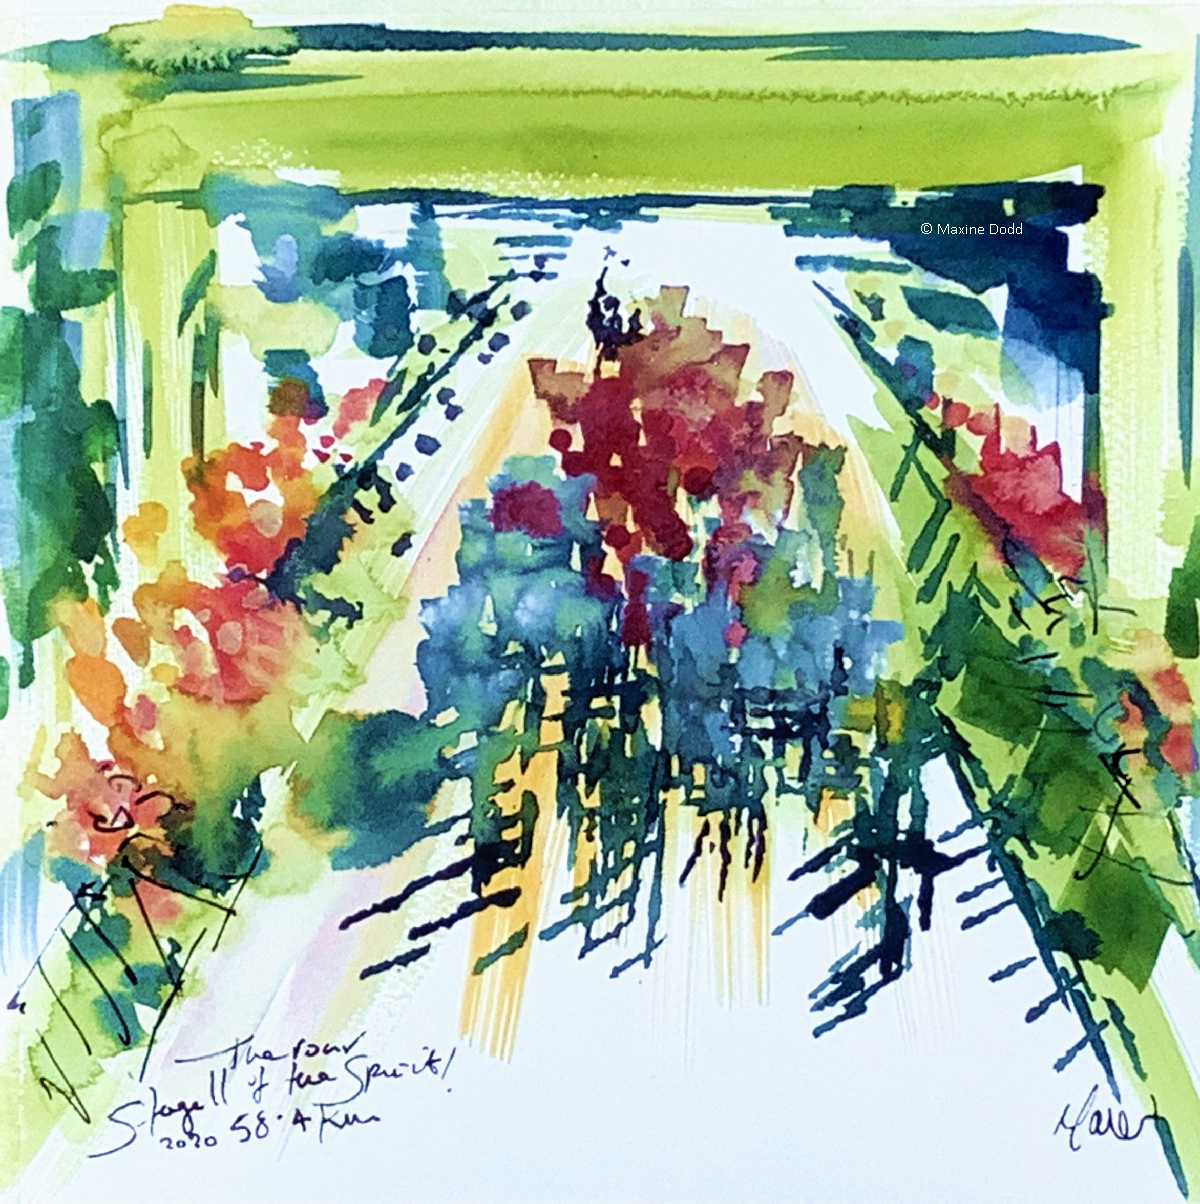 The roar of the sprint! watercolour, pen and ink by Maxine Dodd